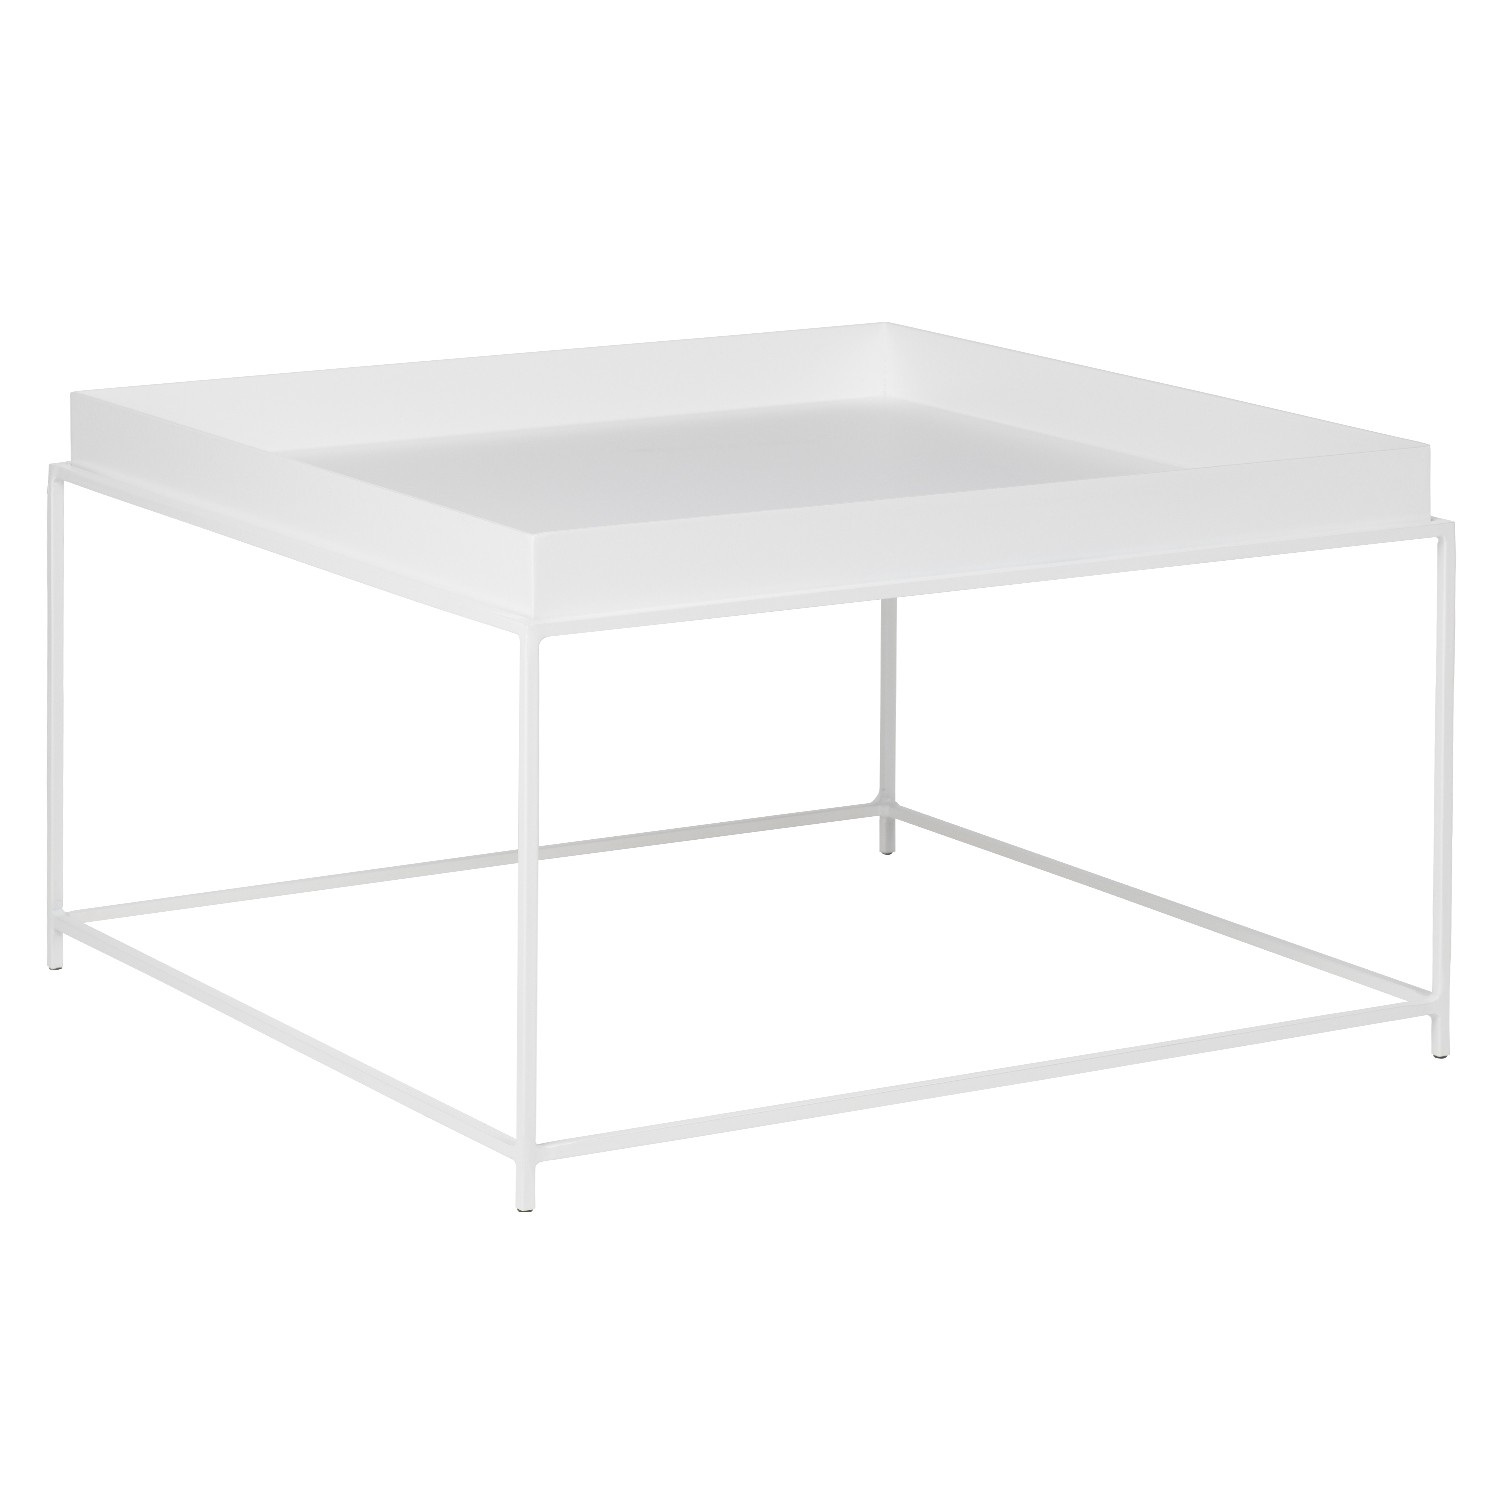 Arsen Table, gallery image 1